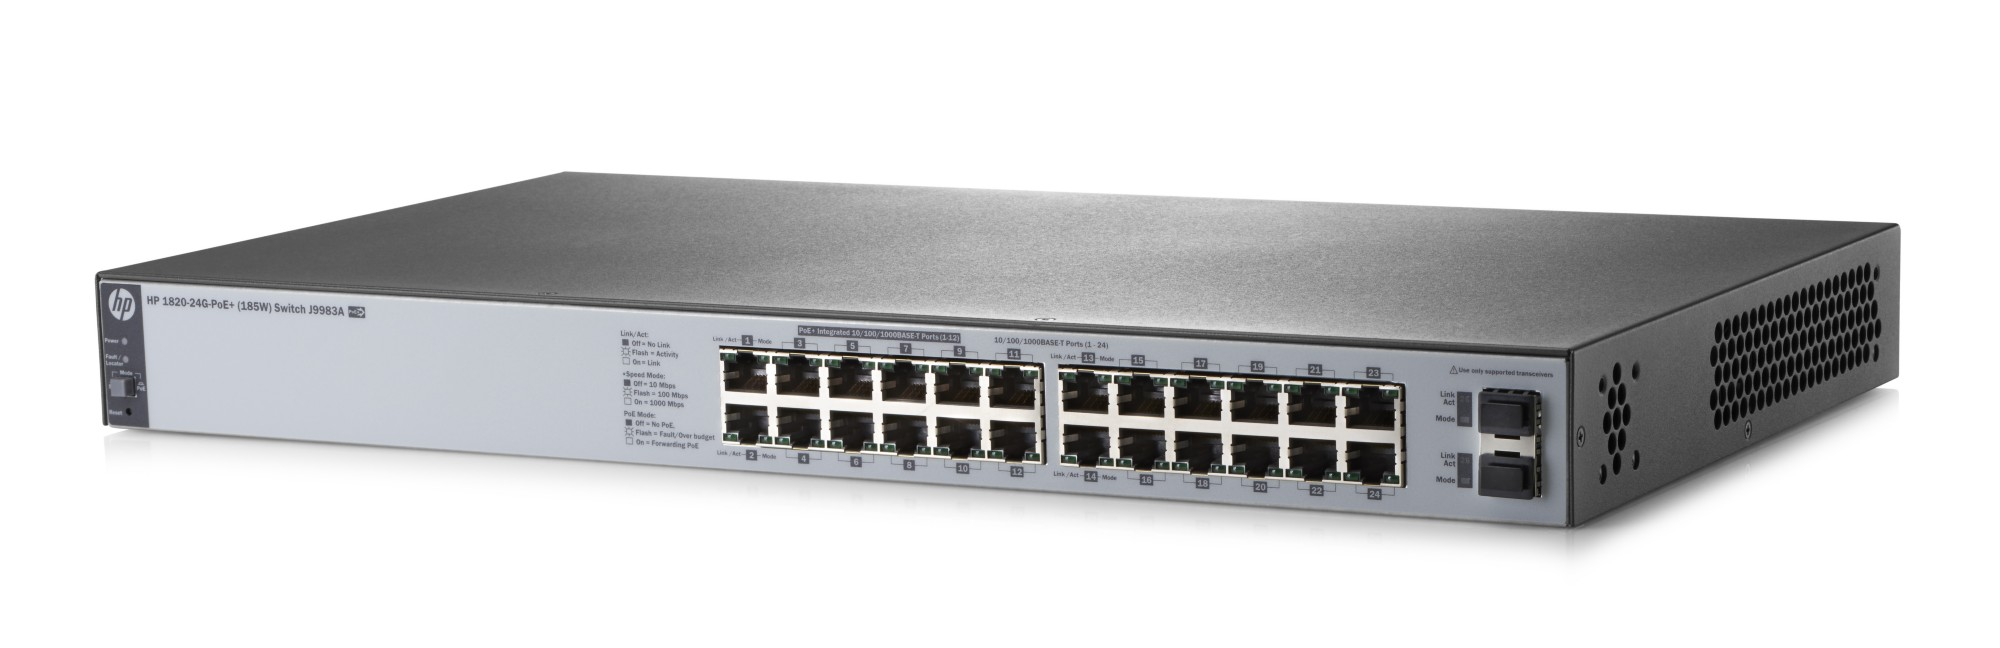 HPE J9983A 1820-24G-POE+ (185W) MANAGED NETWORK SWITCH L2 GIGABIT ETHERNET (10/100/1000) POWER OVER (POE) 1U GREY